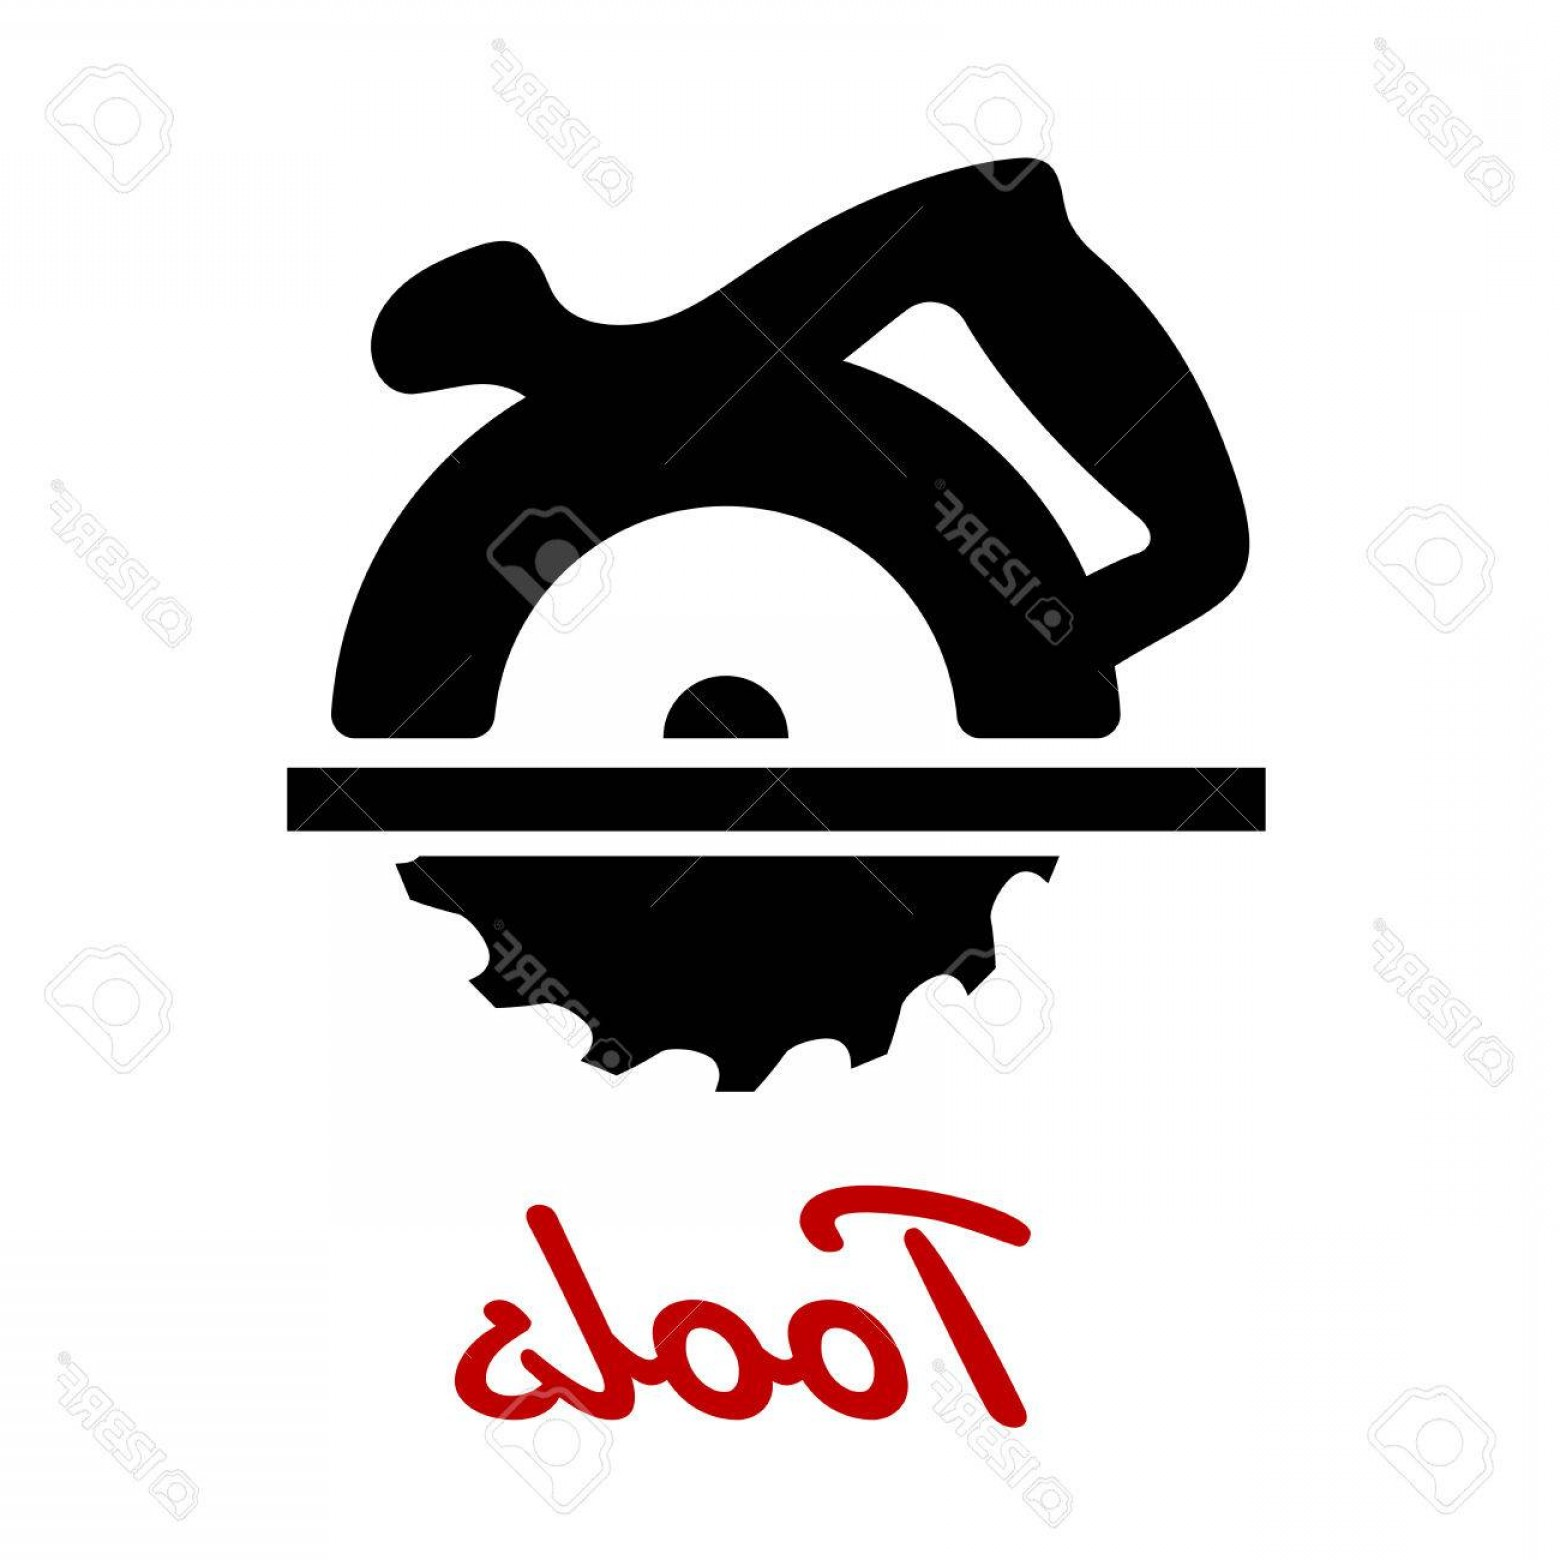 1560x1560 Photostock Vector Miter Saw Black Icon With Circular Saw Blade And